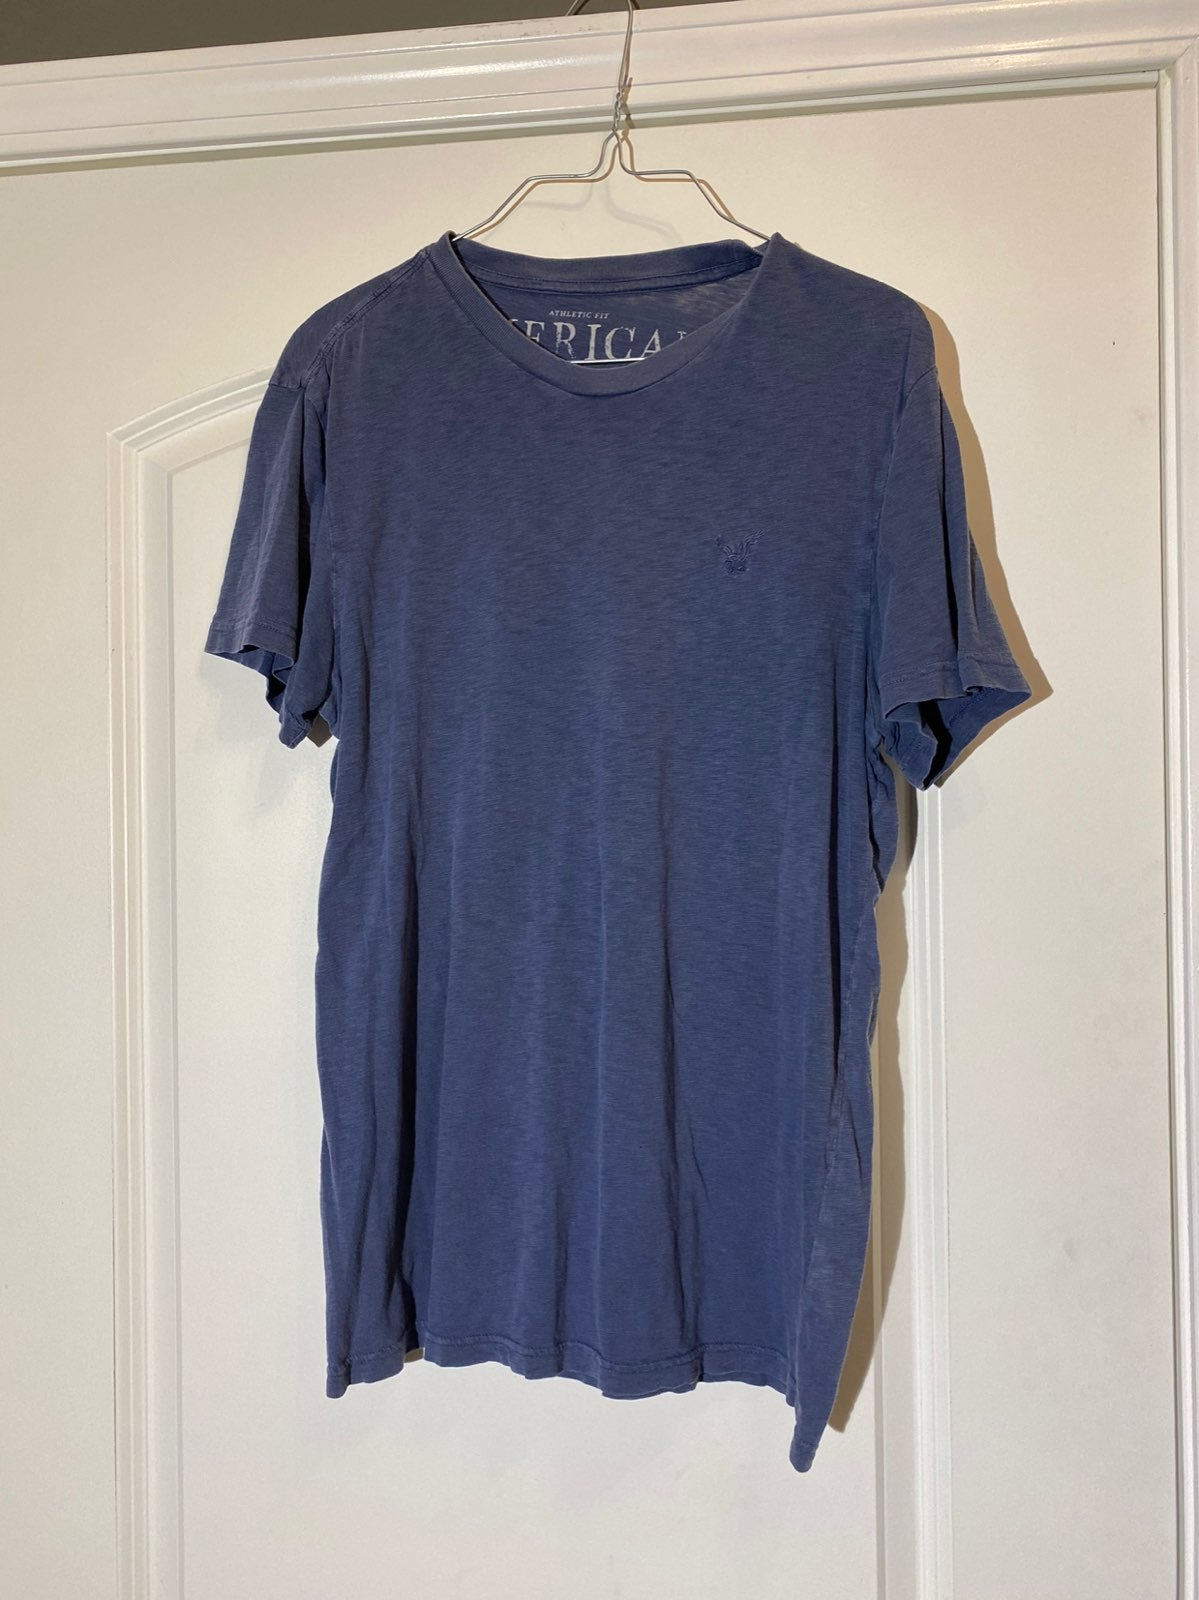 Mens American Eagle navy blue shirt